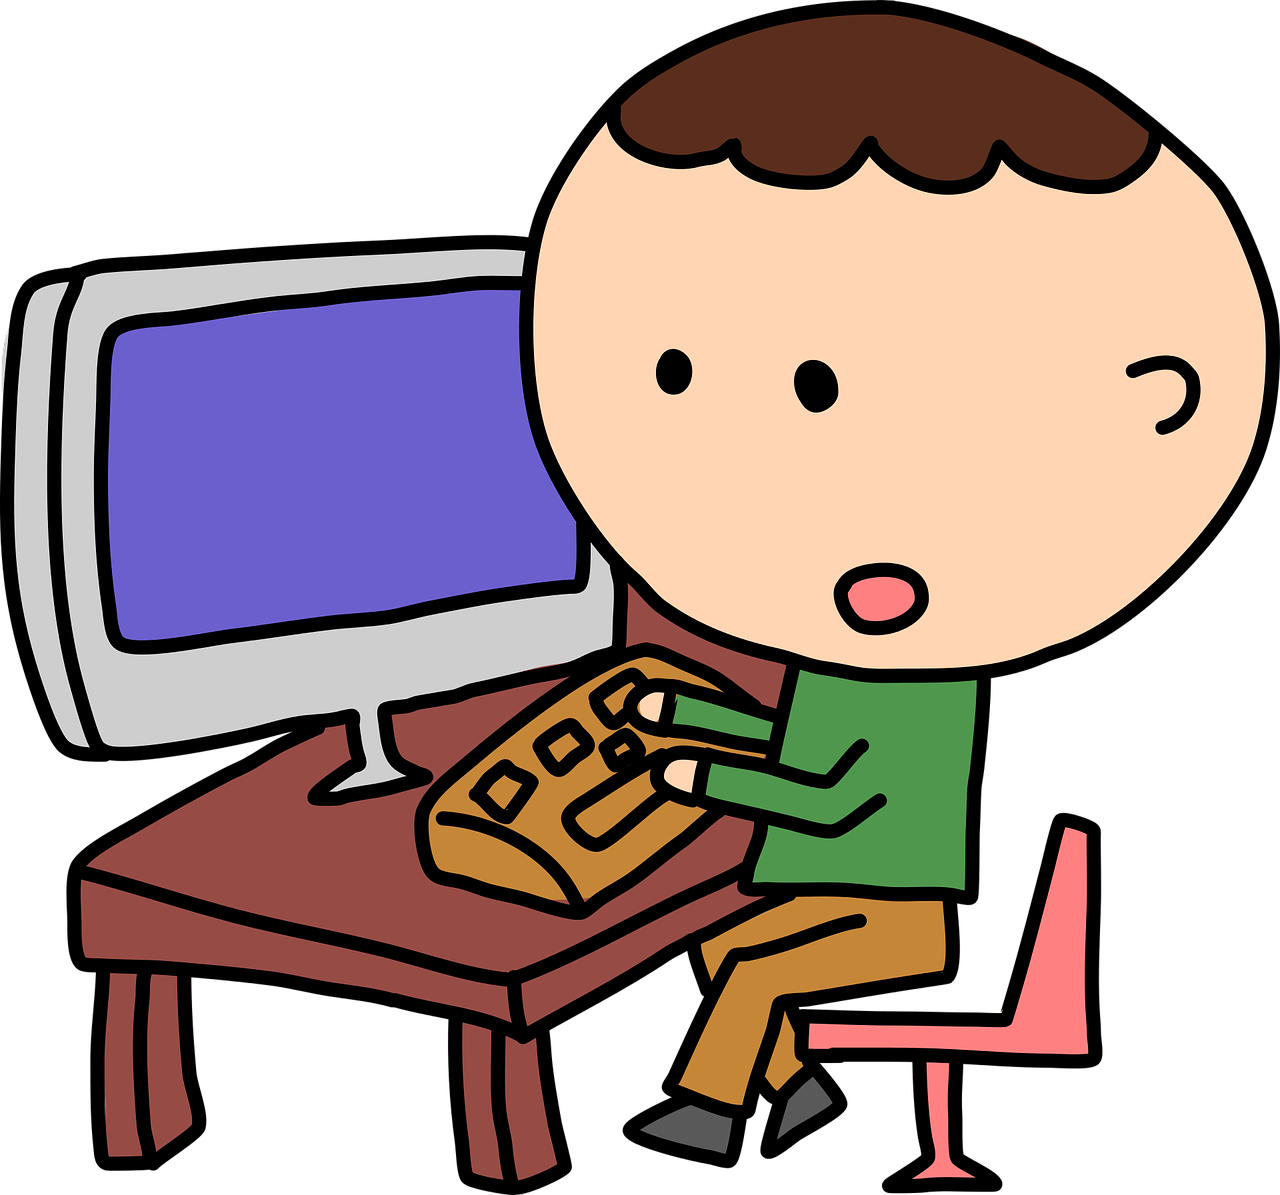 Career counseling online cp. Jobs clipart workplace